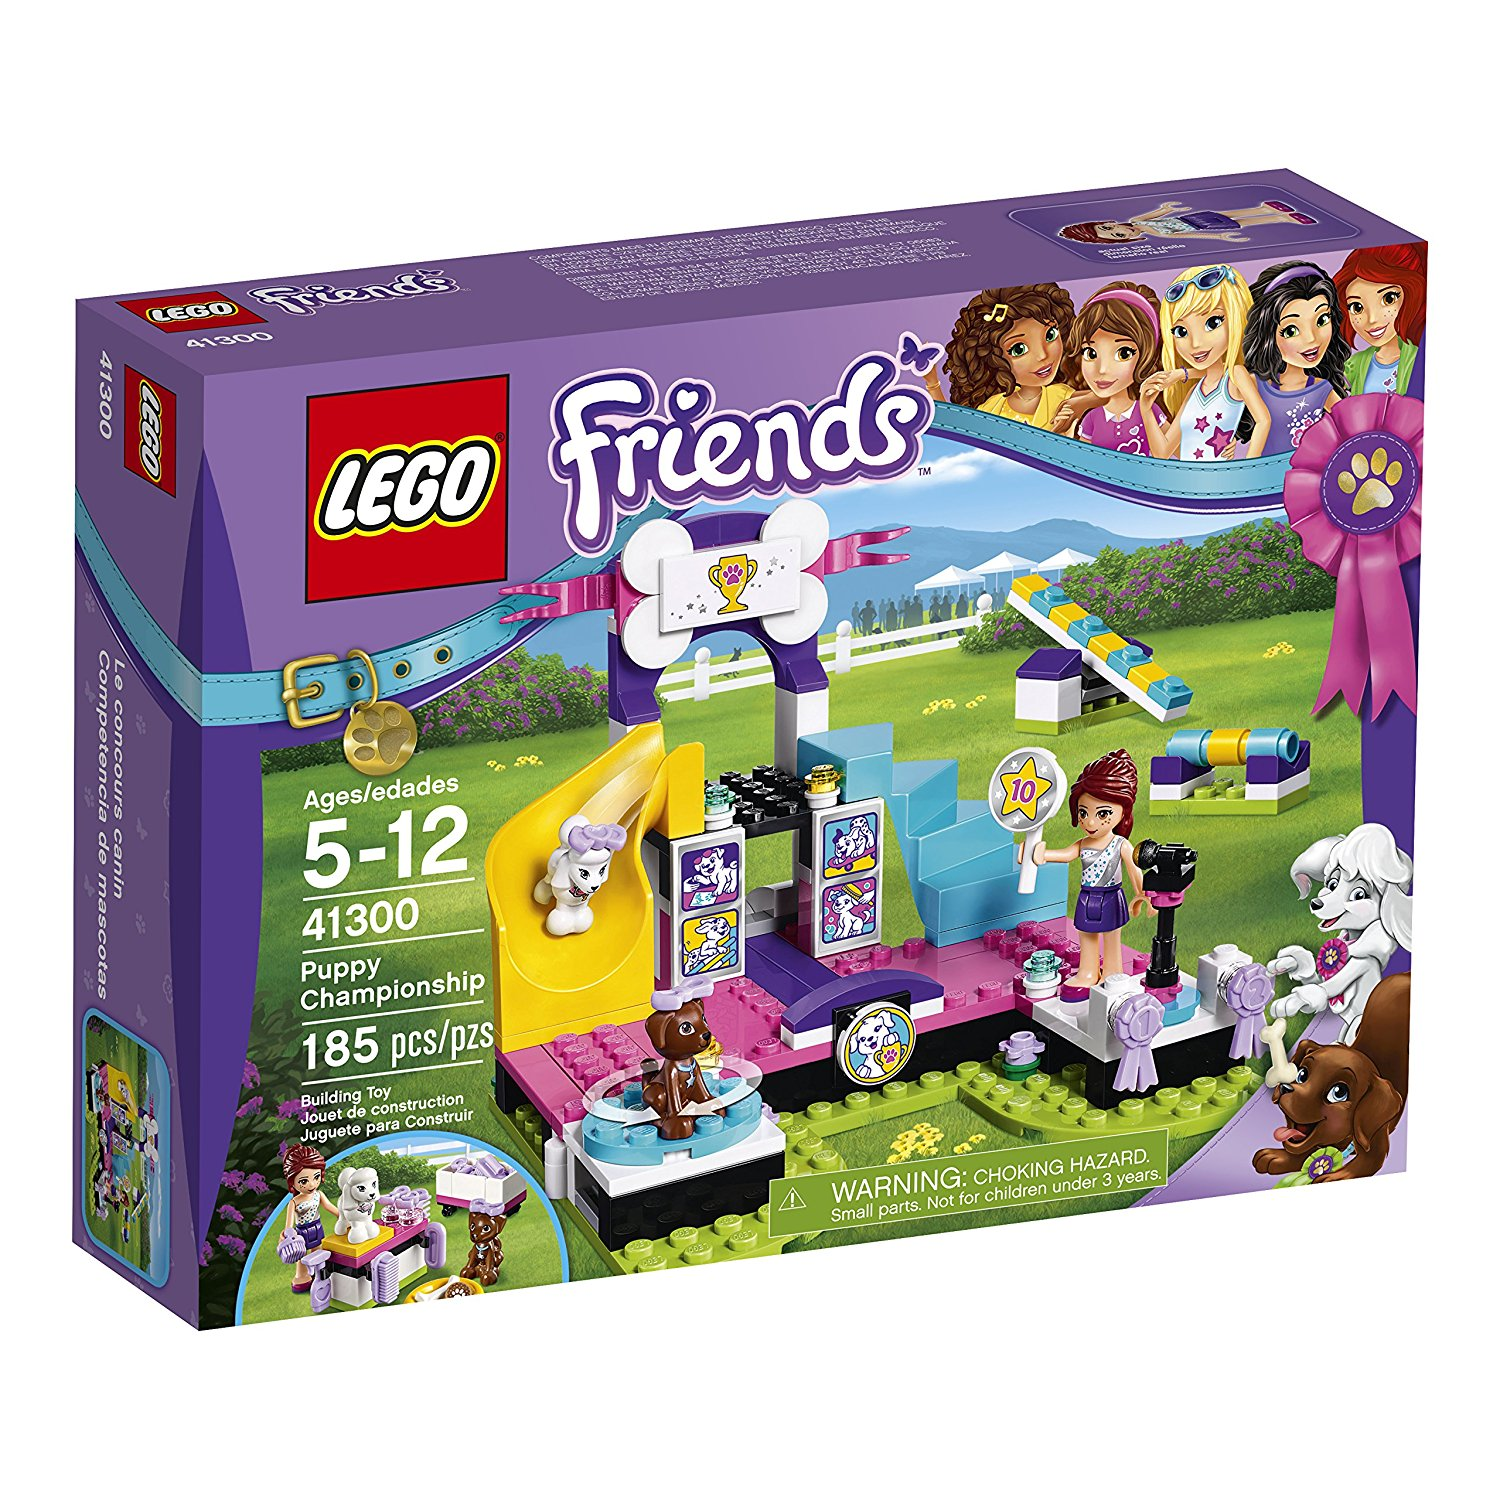 LEGO Friends Puppy Championship 41300 Popular Childrens Toy